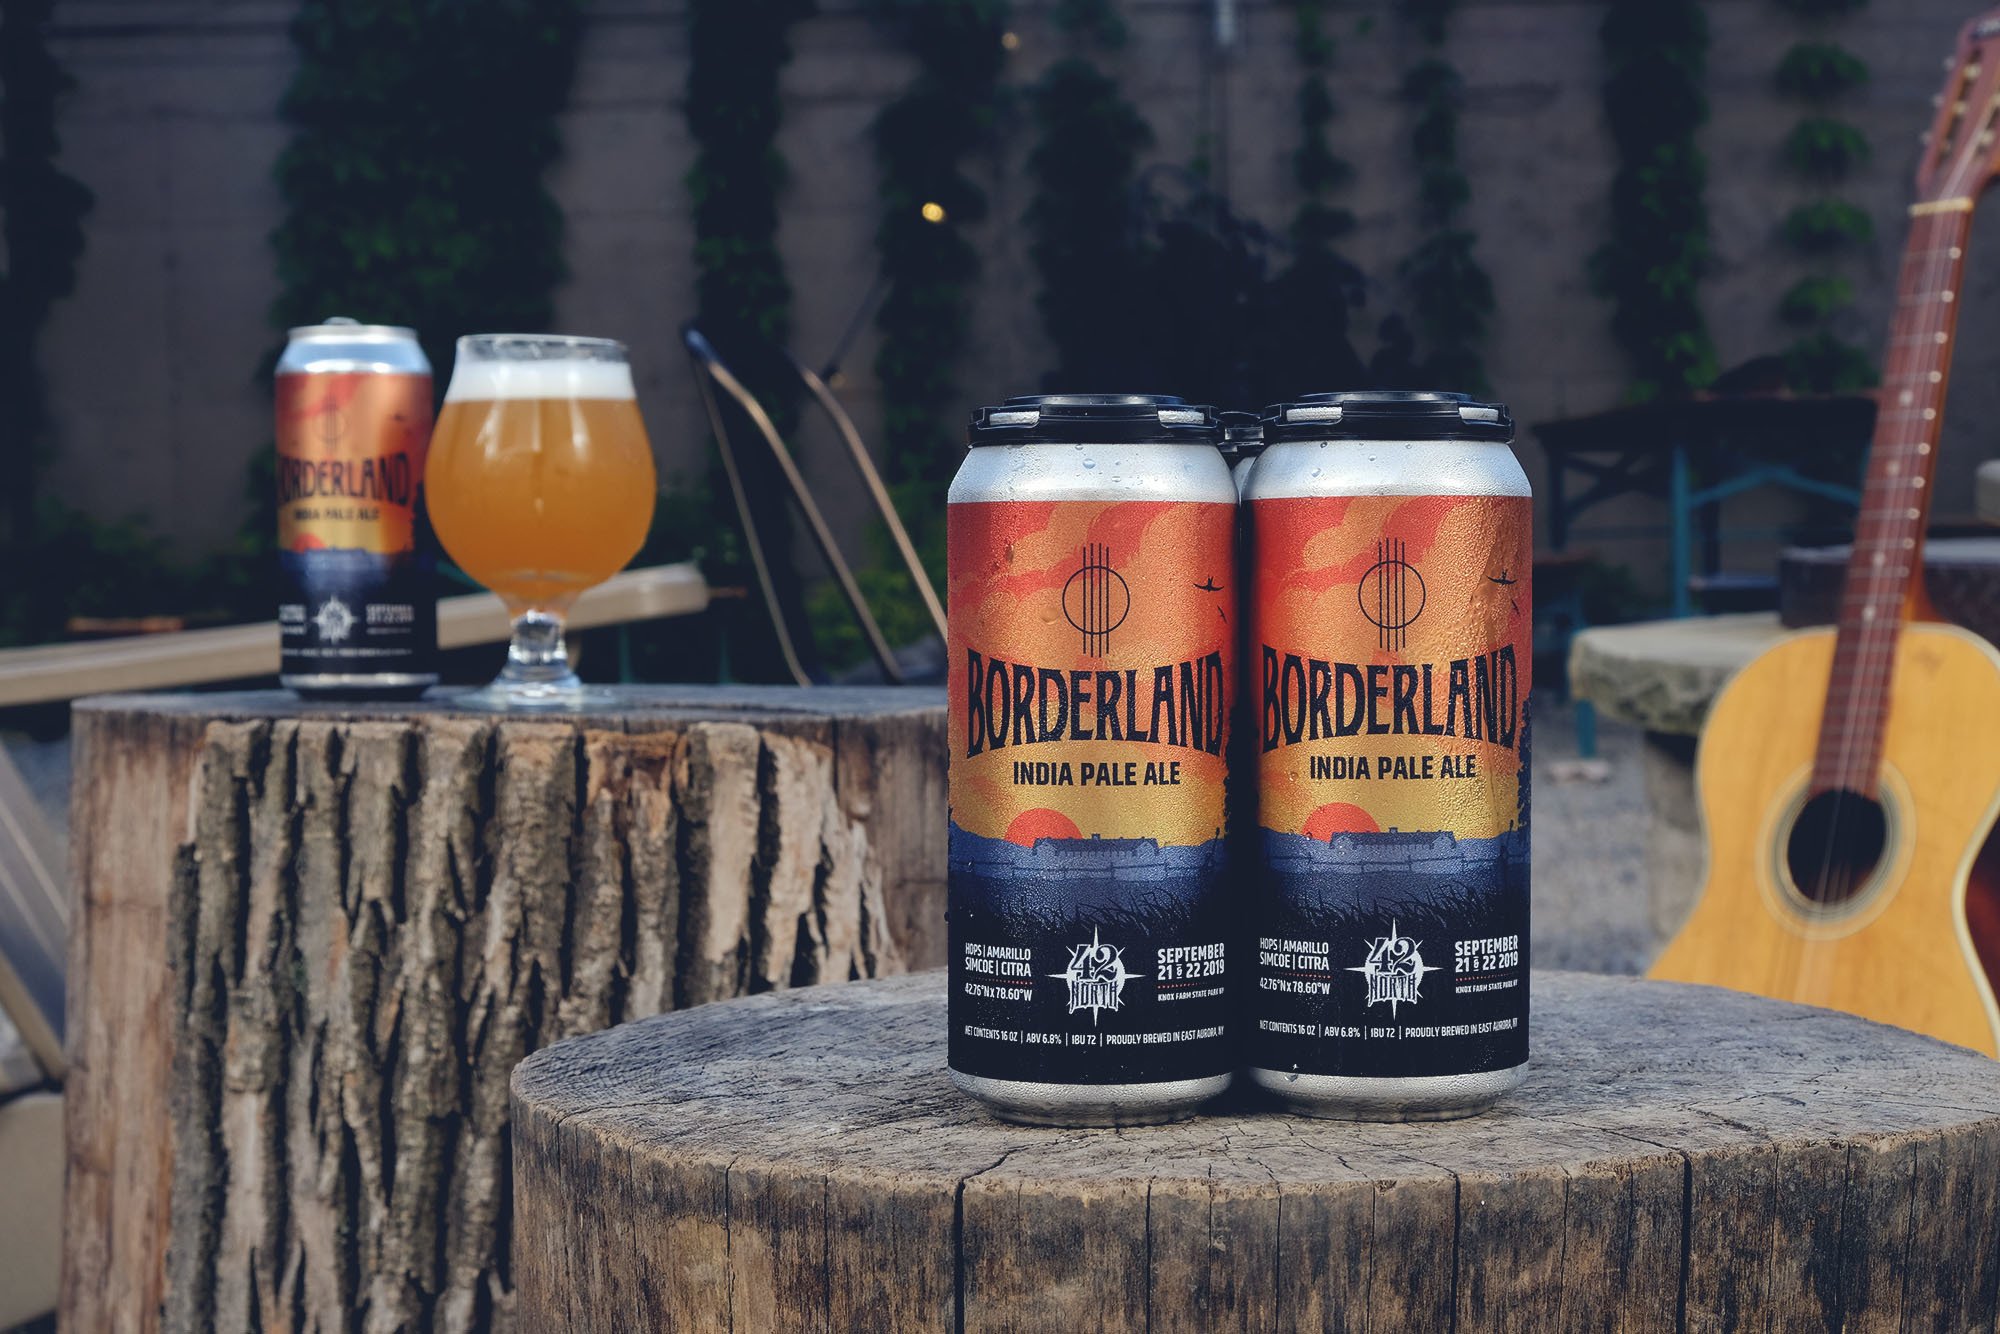 Borderland Festival x 42 North Brewing Limited Edition IPA Can